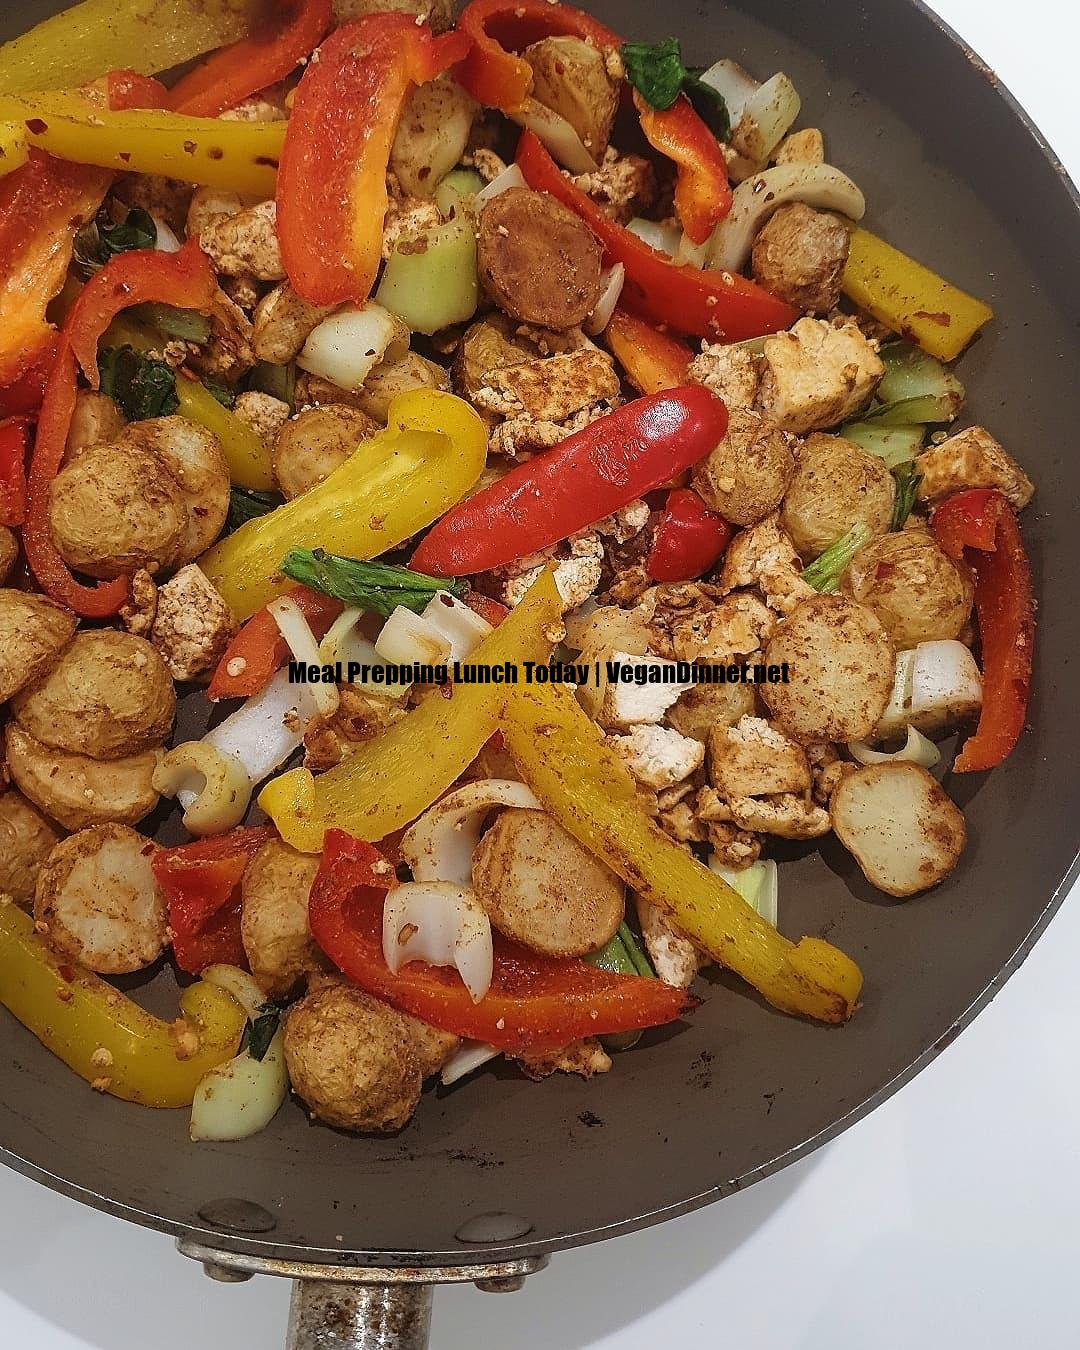 meal prepping lunch today display image de